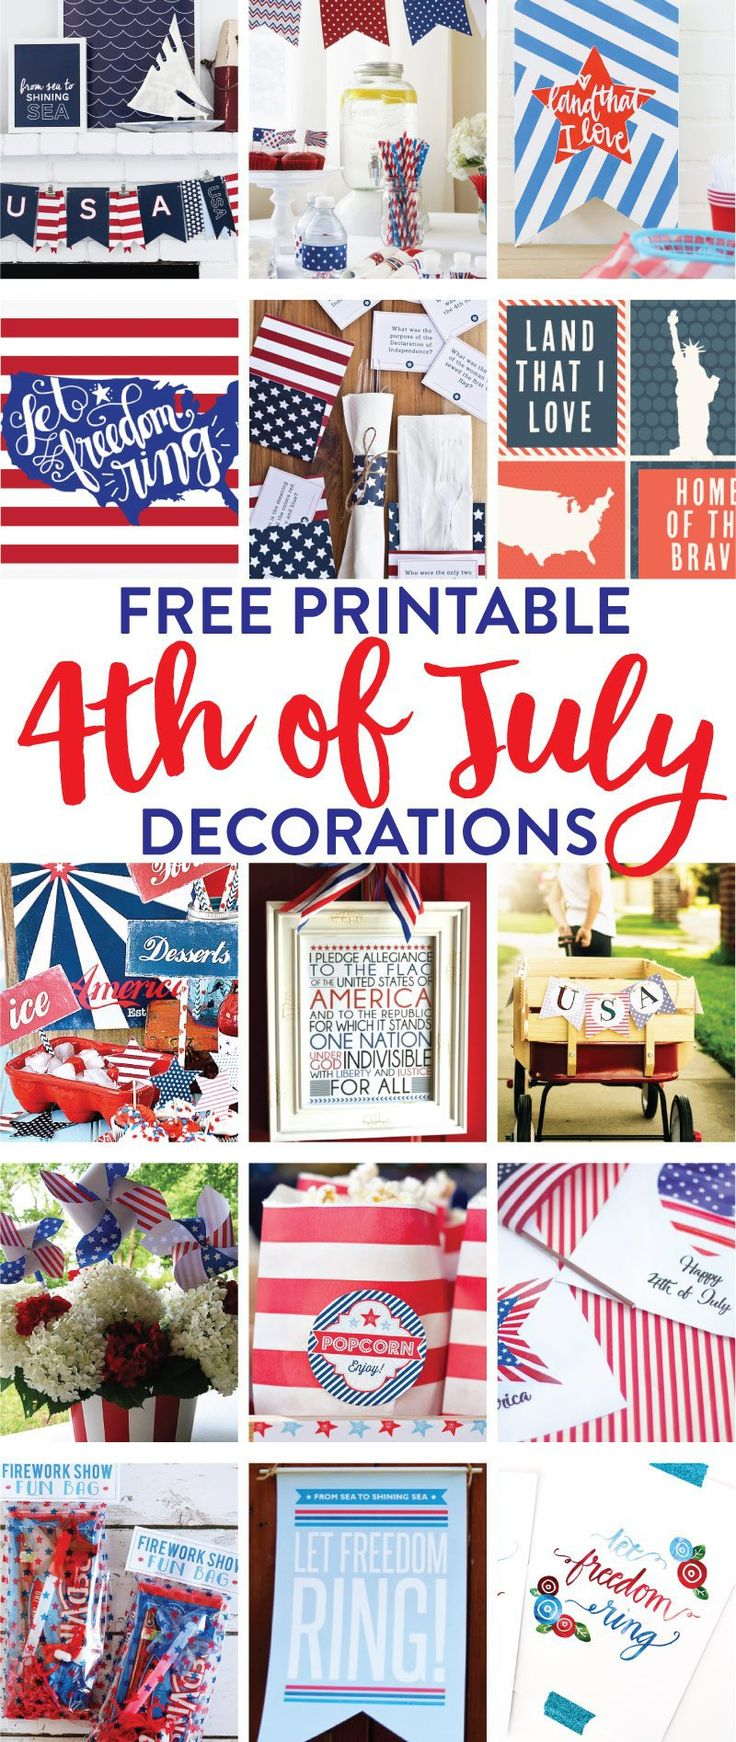 15 FREE Printable 4th of July Decorations on Love the Day